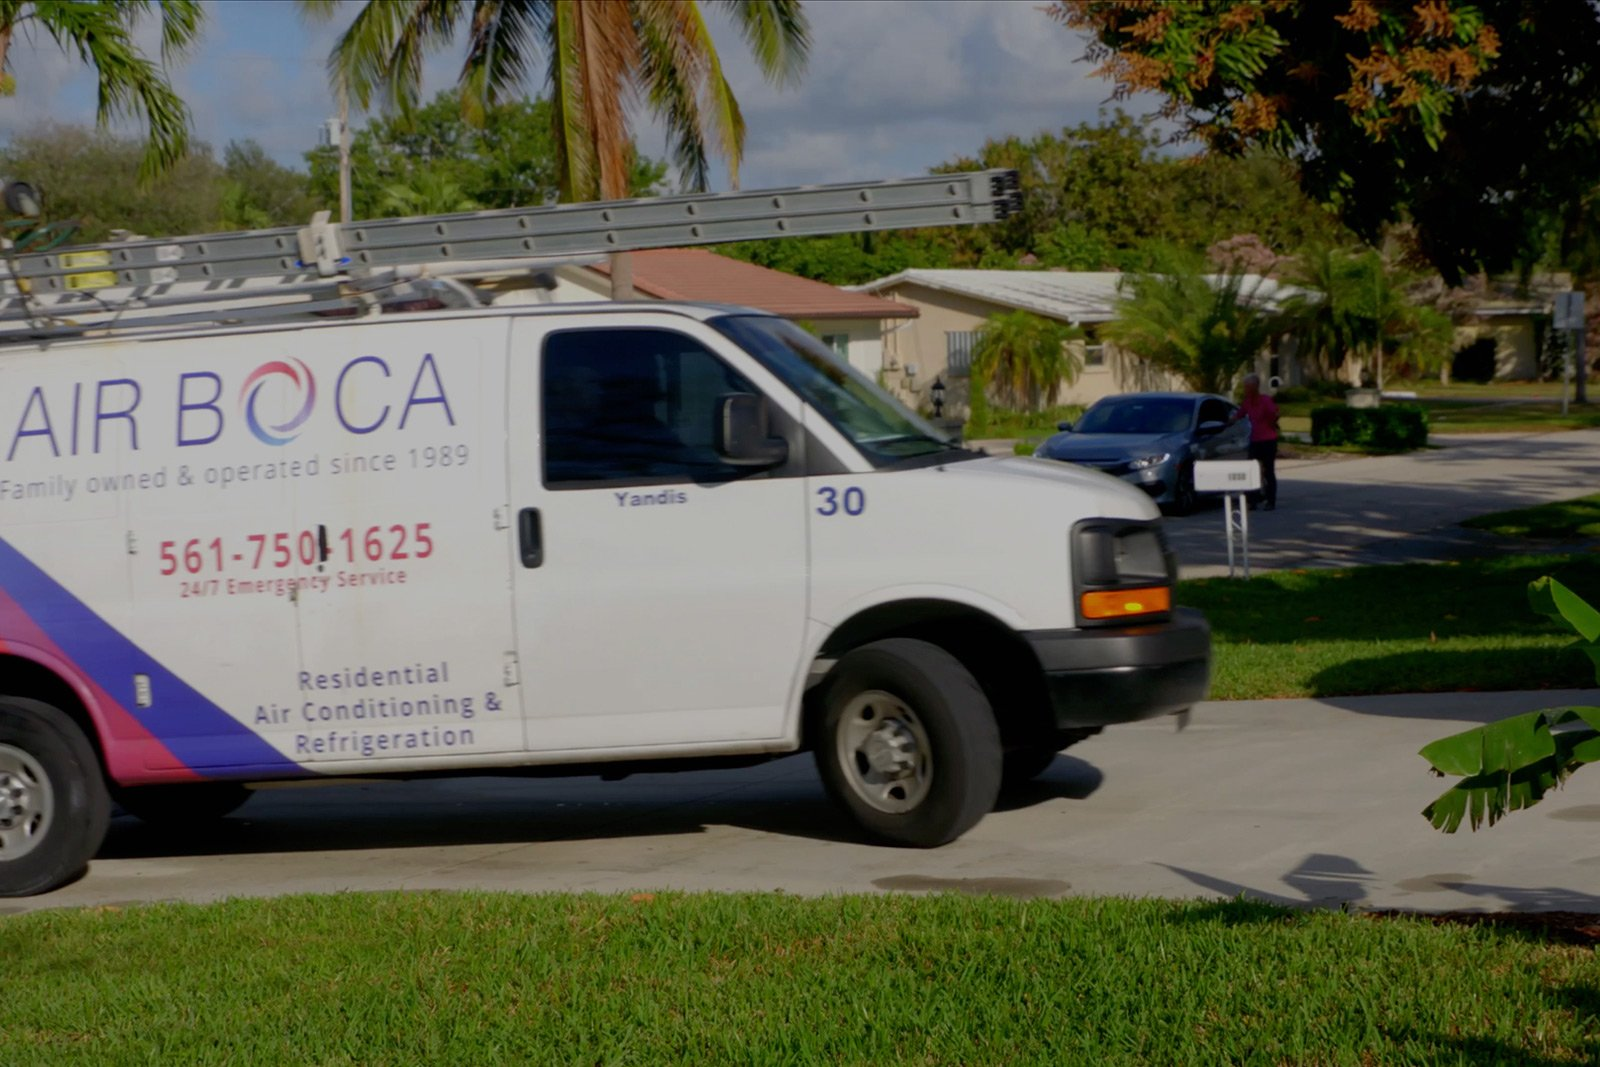 Air Boca air conditioning service Boca Raton.